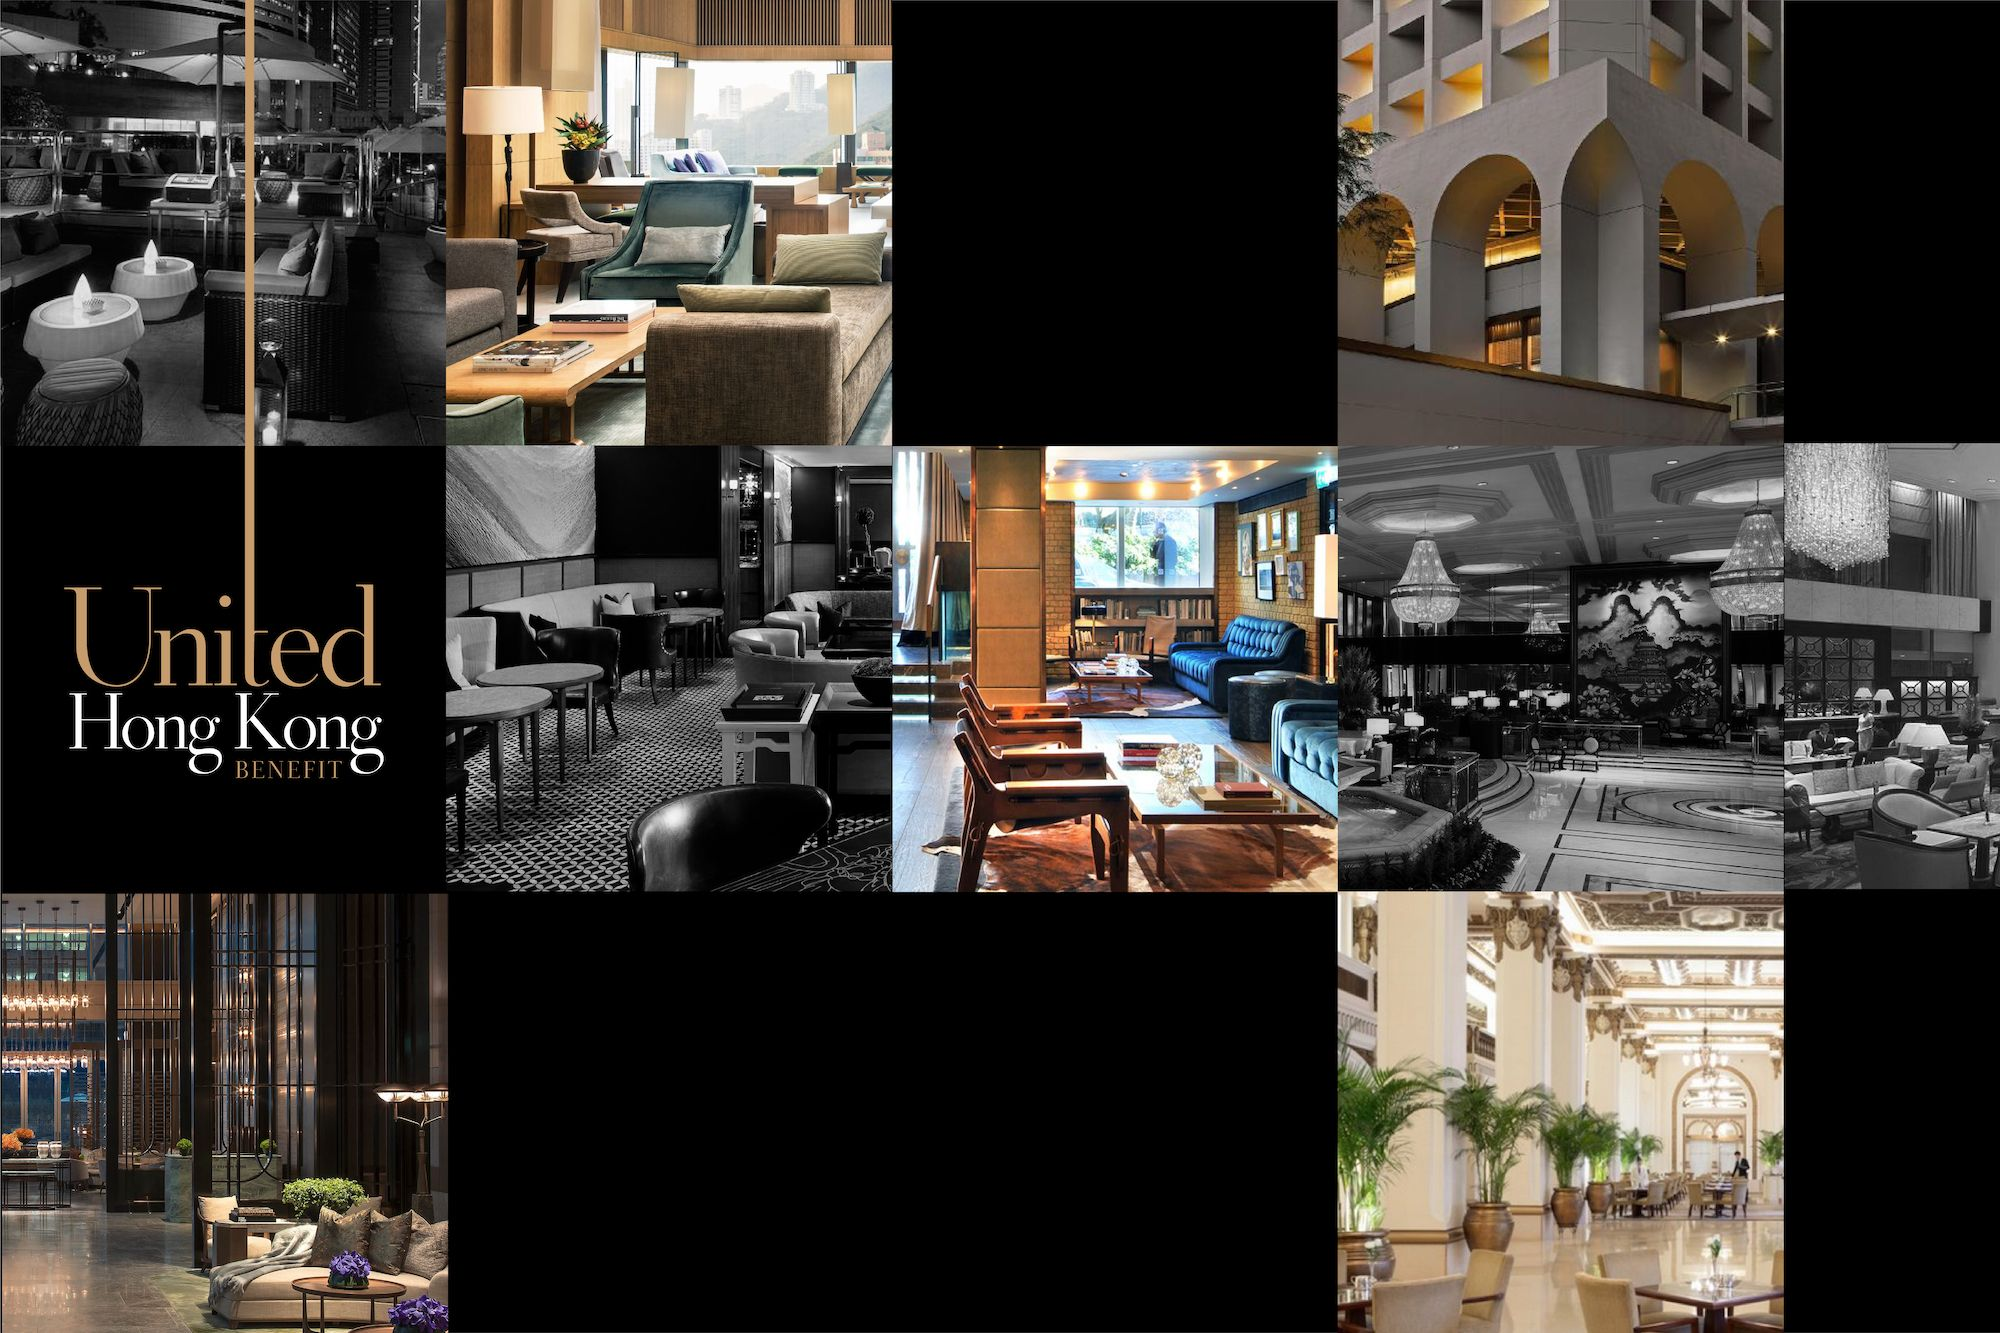 United Hong Kong: Showcasing The Best Hotels In The City